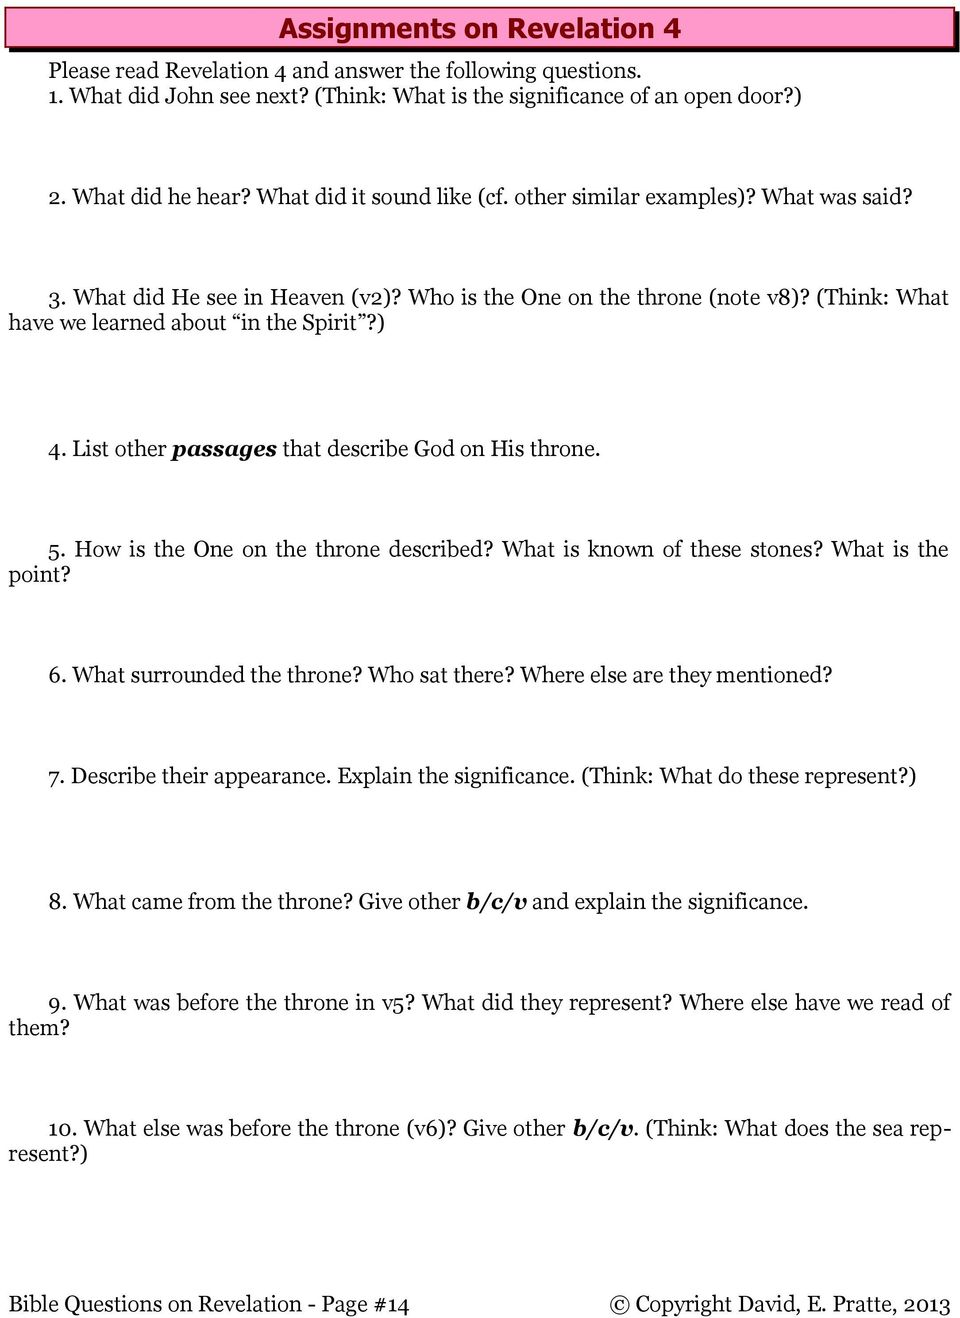 Bible Study Questions on the Book of Revelation by David E